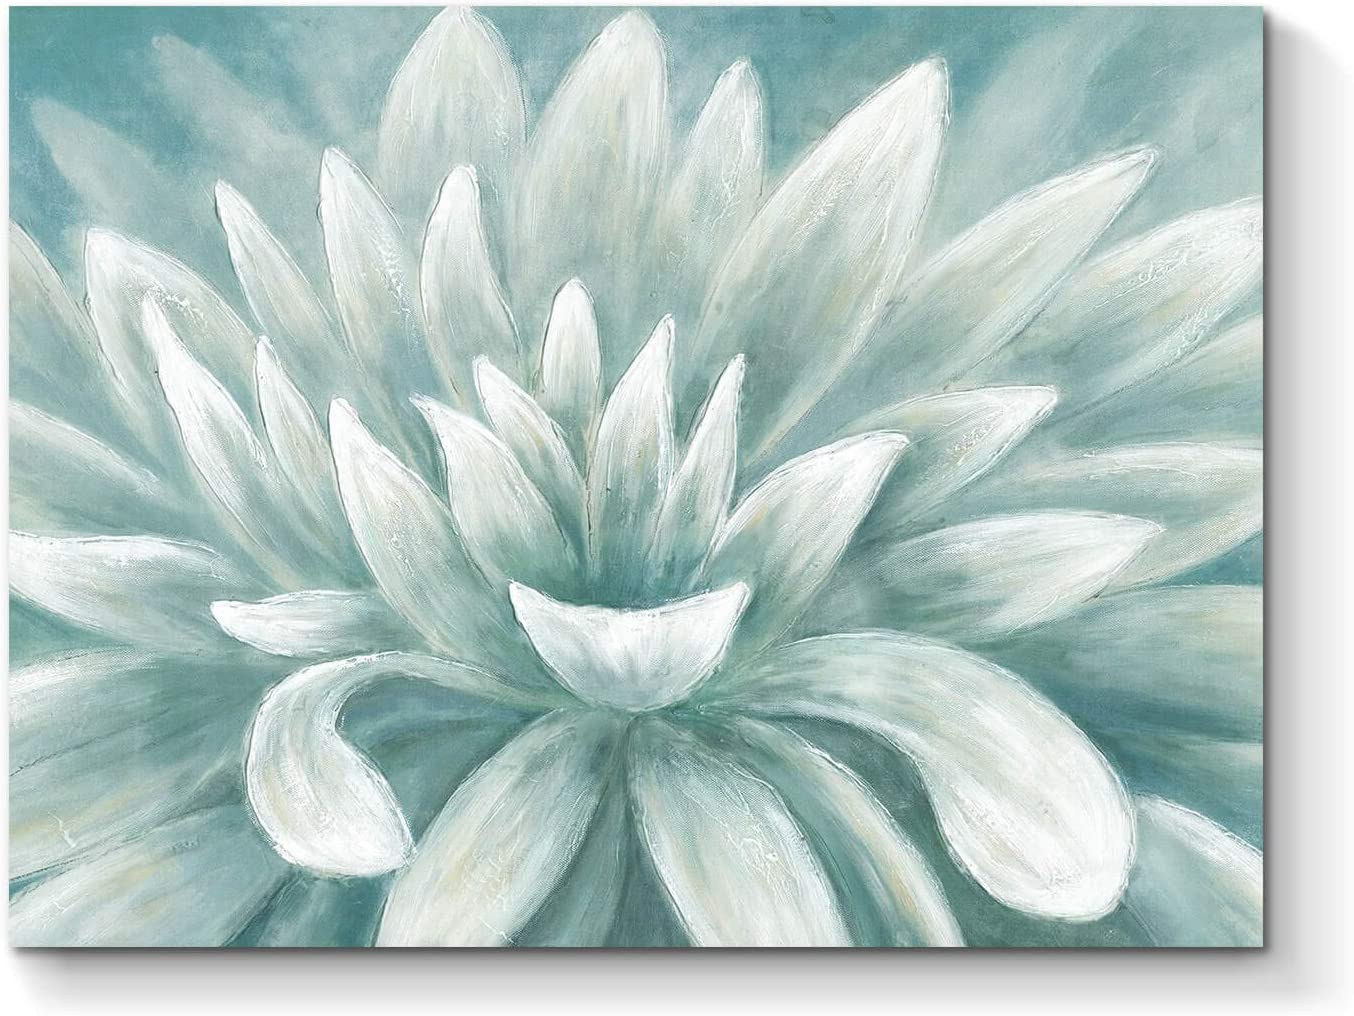 Abstract Floral Picture Wall Art: Blossom Flower Painting Print Artwork on Canvas for Bedroom Office ( 24''W x 18''H )